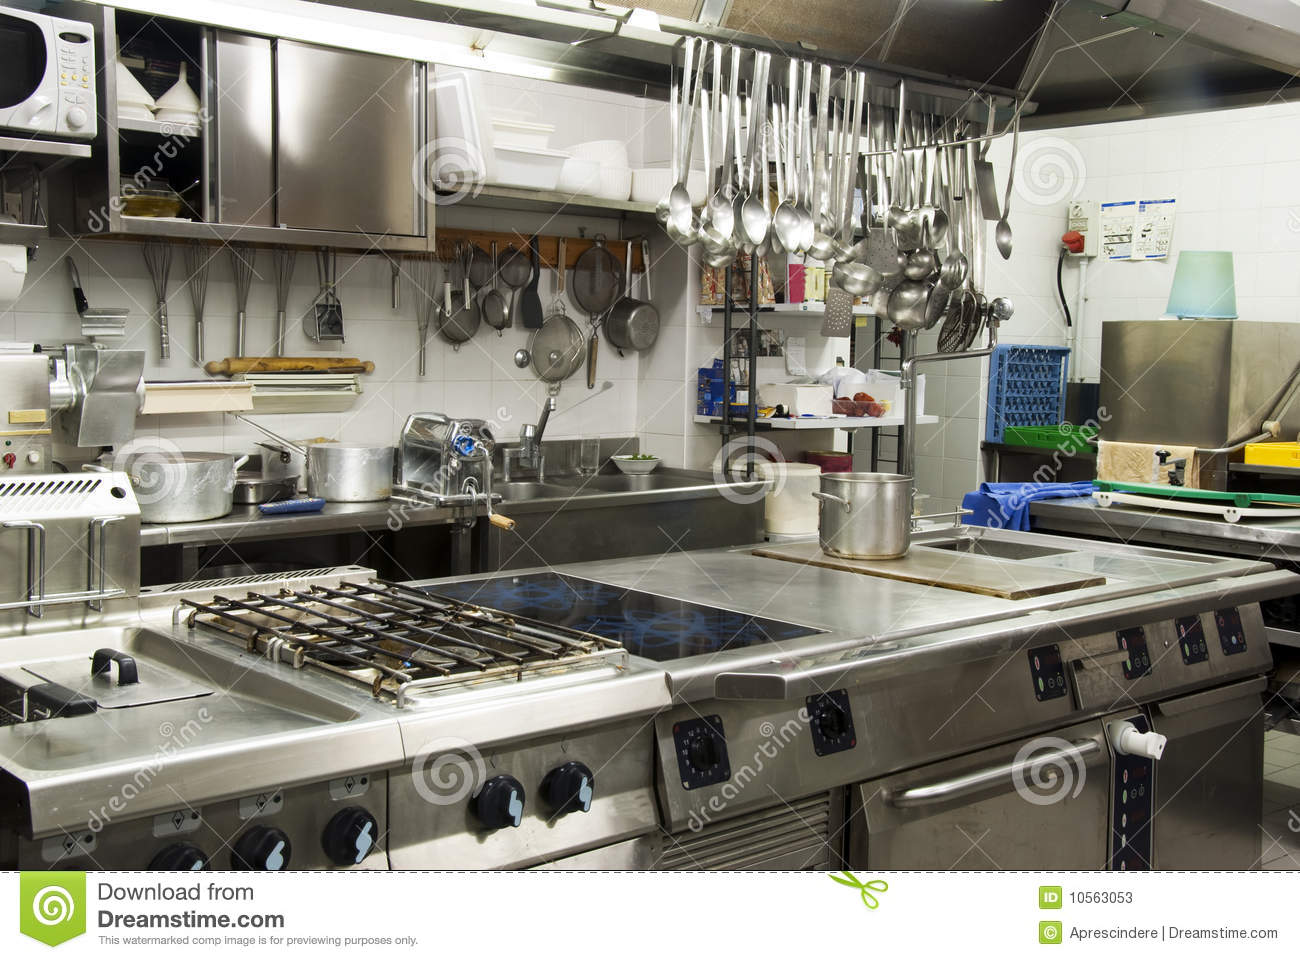 Hotel Kitchen Is